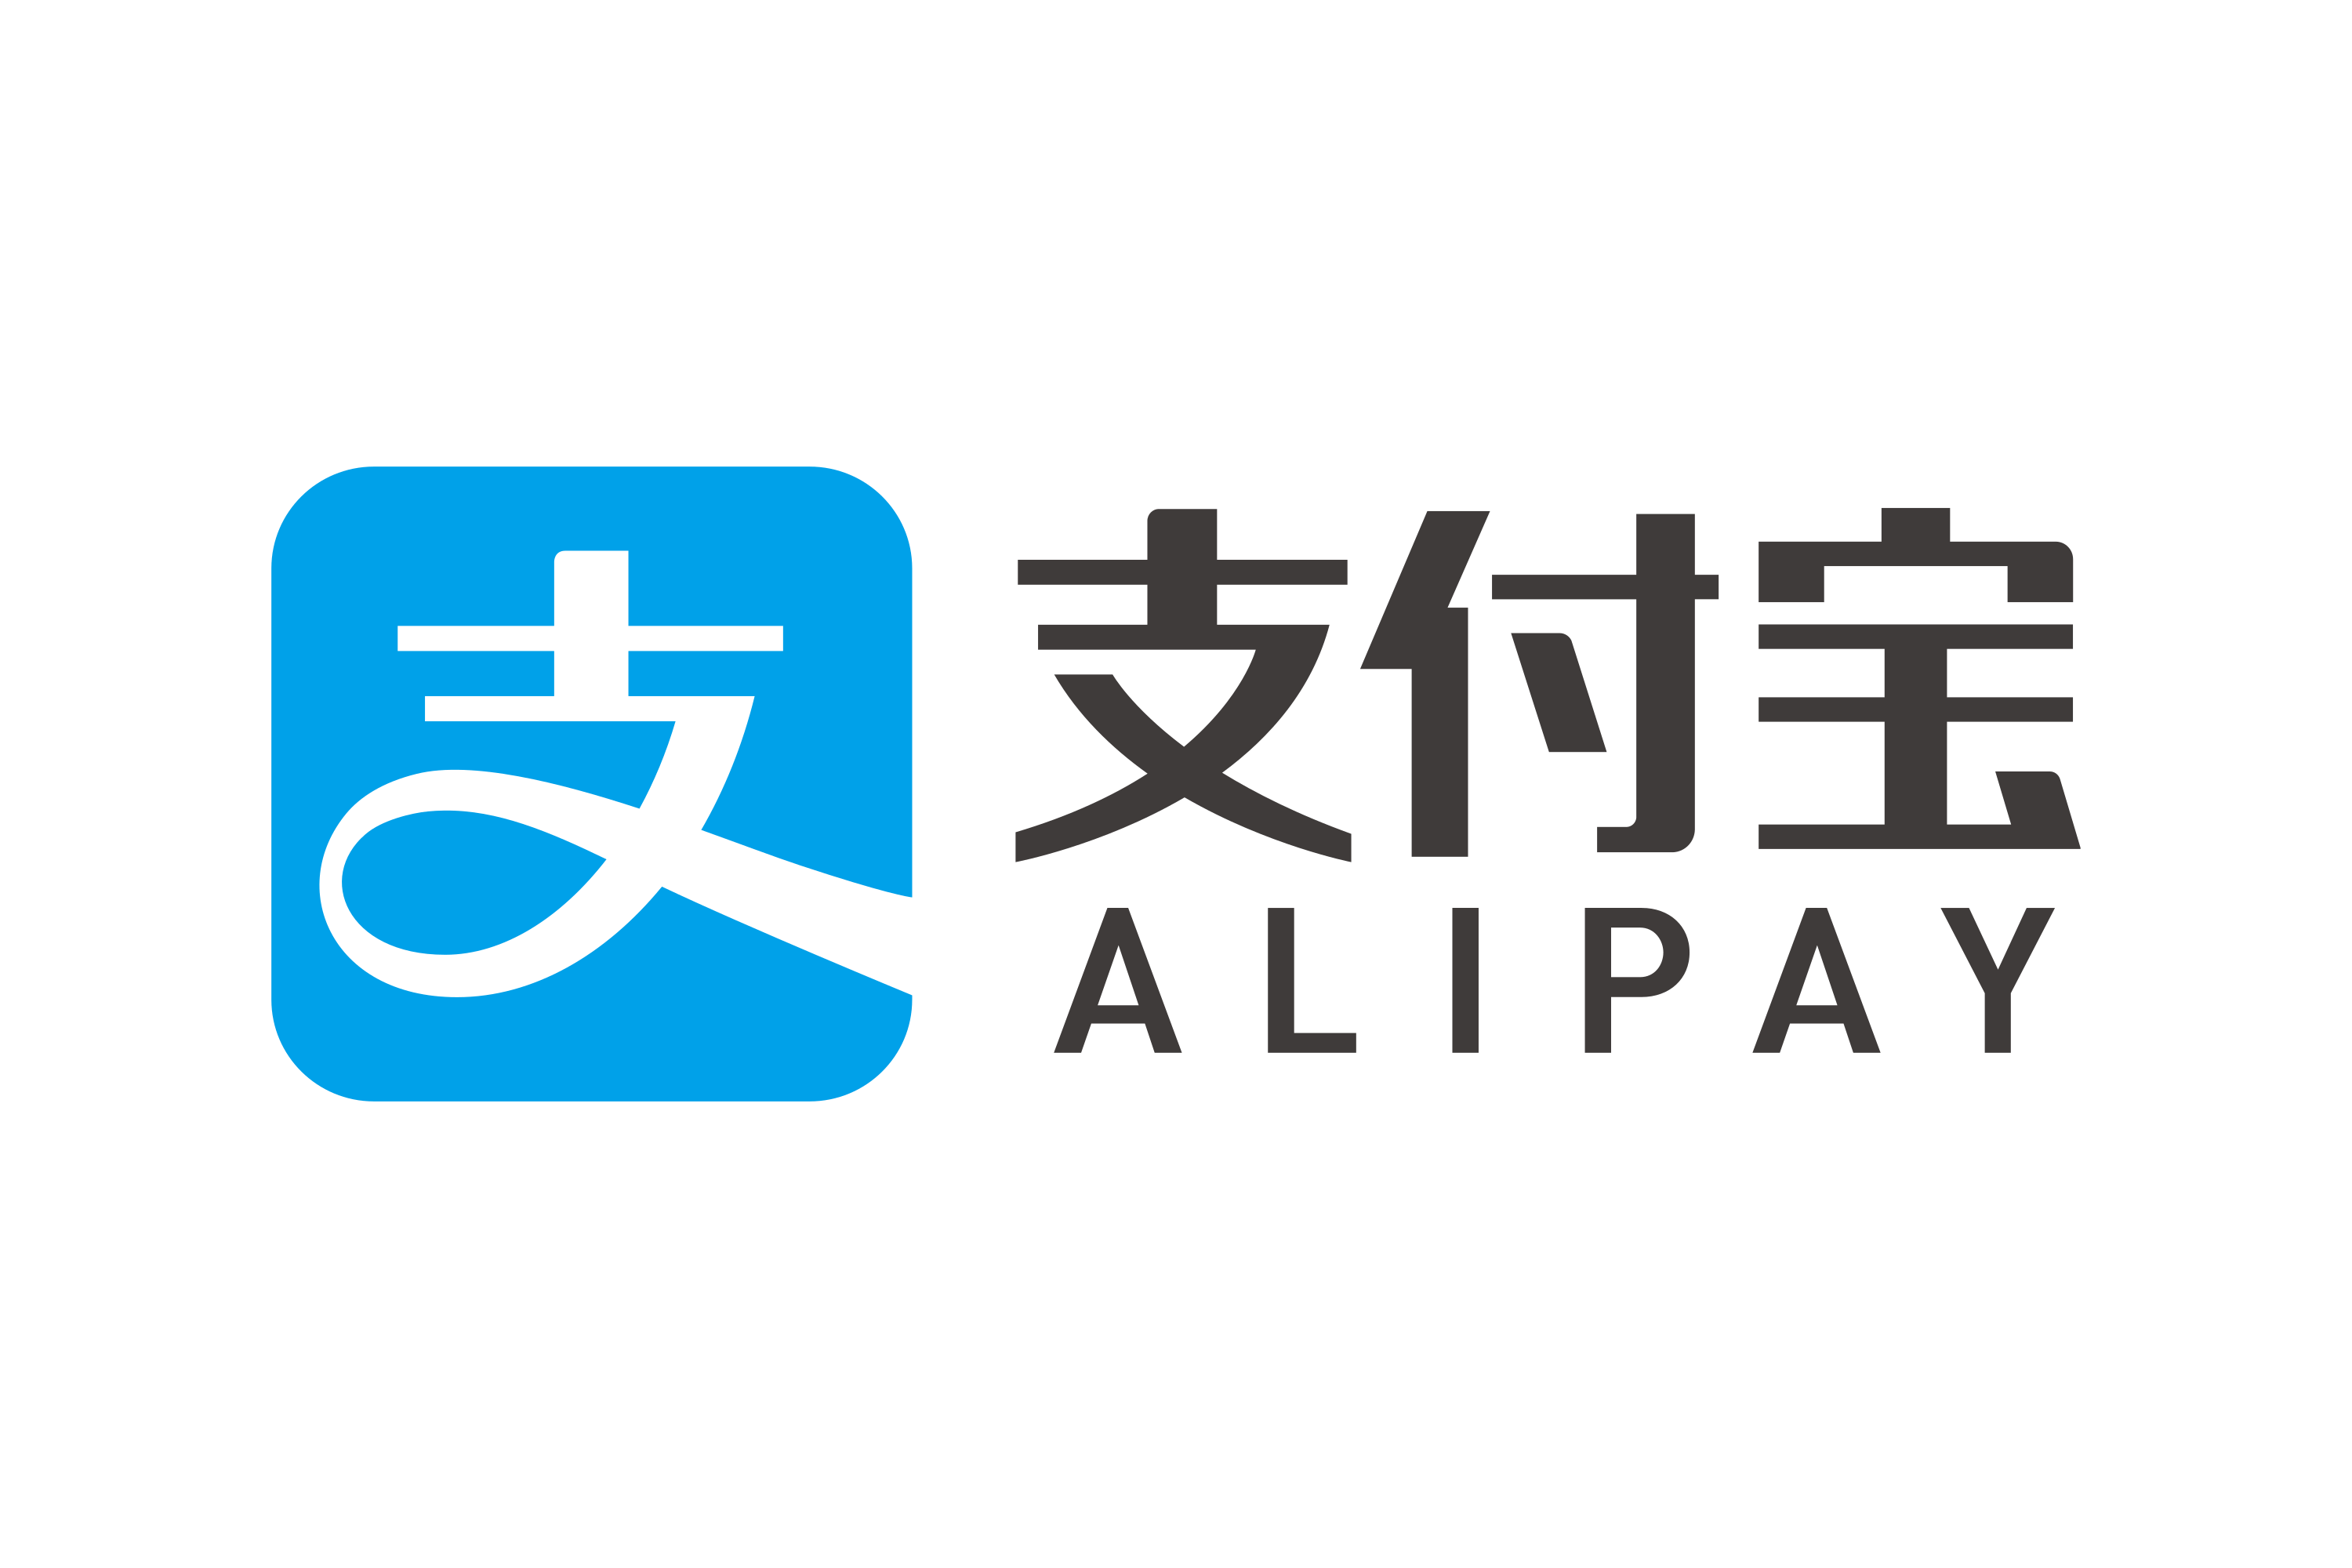 Download Alipay Logo in SVG Vector or PNG File Format - Logo.wine